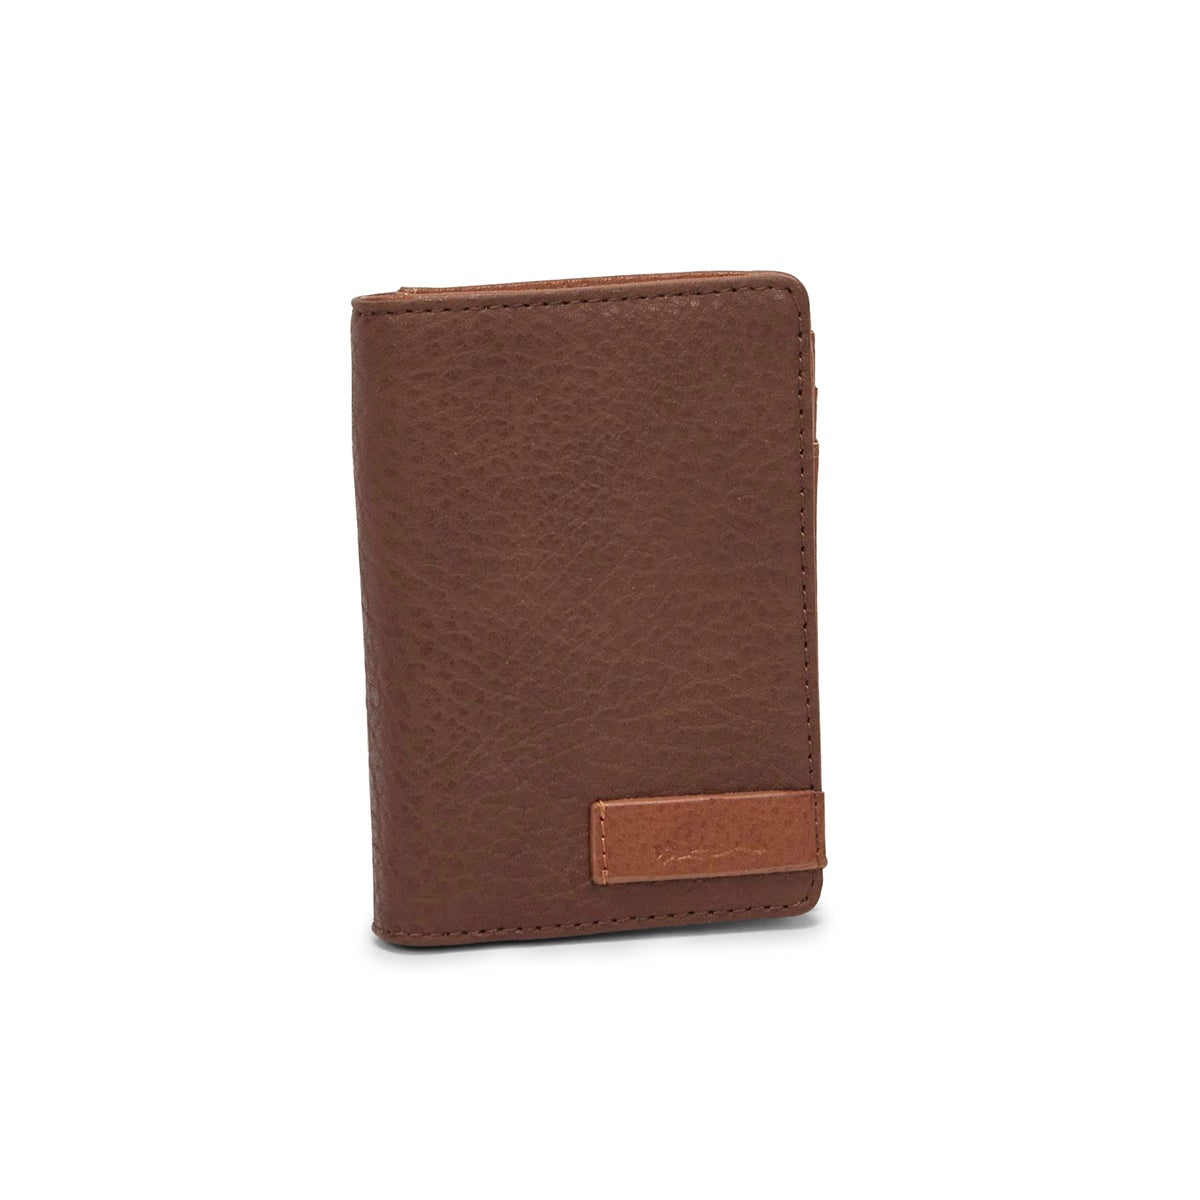 Mns Tracker brown/cognac billfold